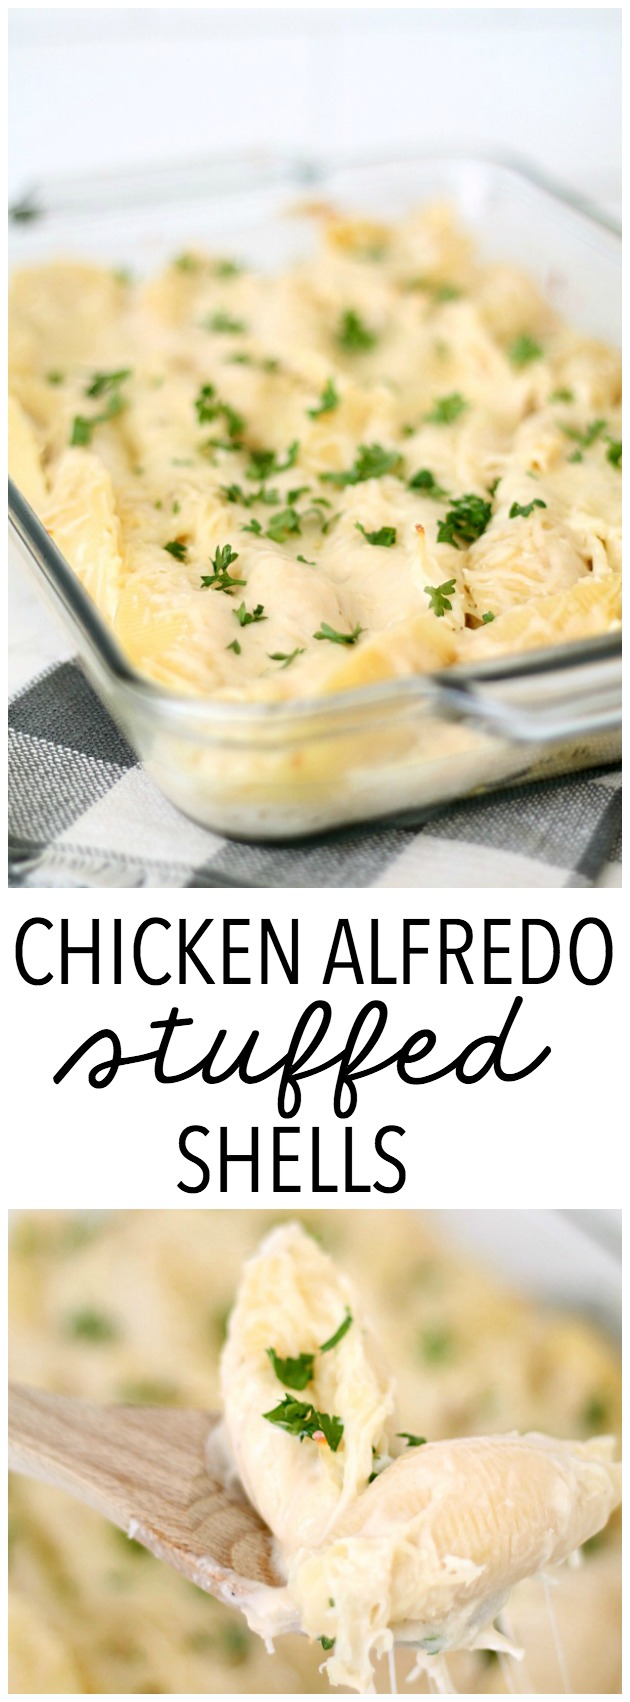 Chicken Alfredo Stuffed Shells Recipe from SixSistersStuff.com